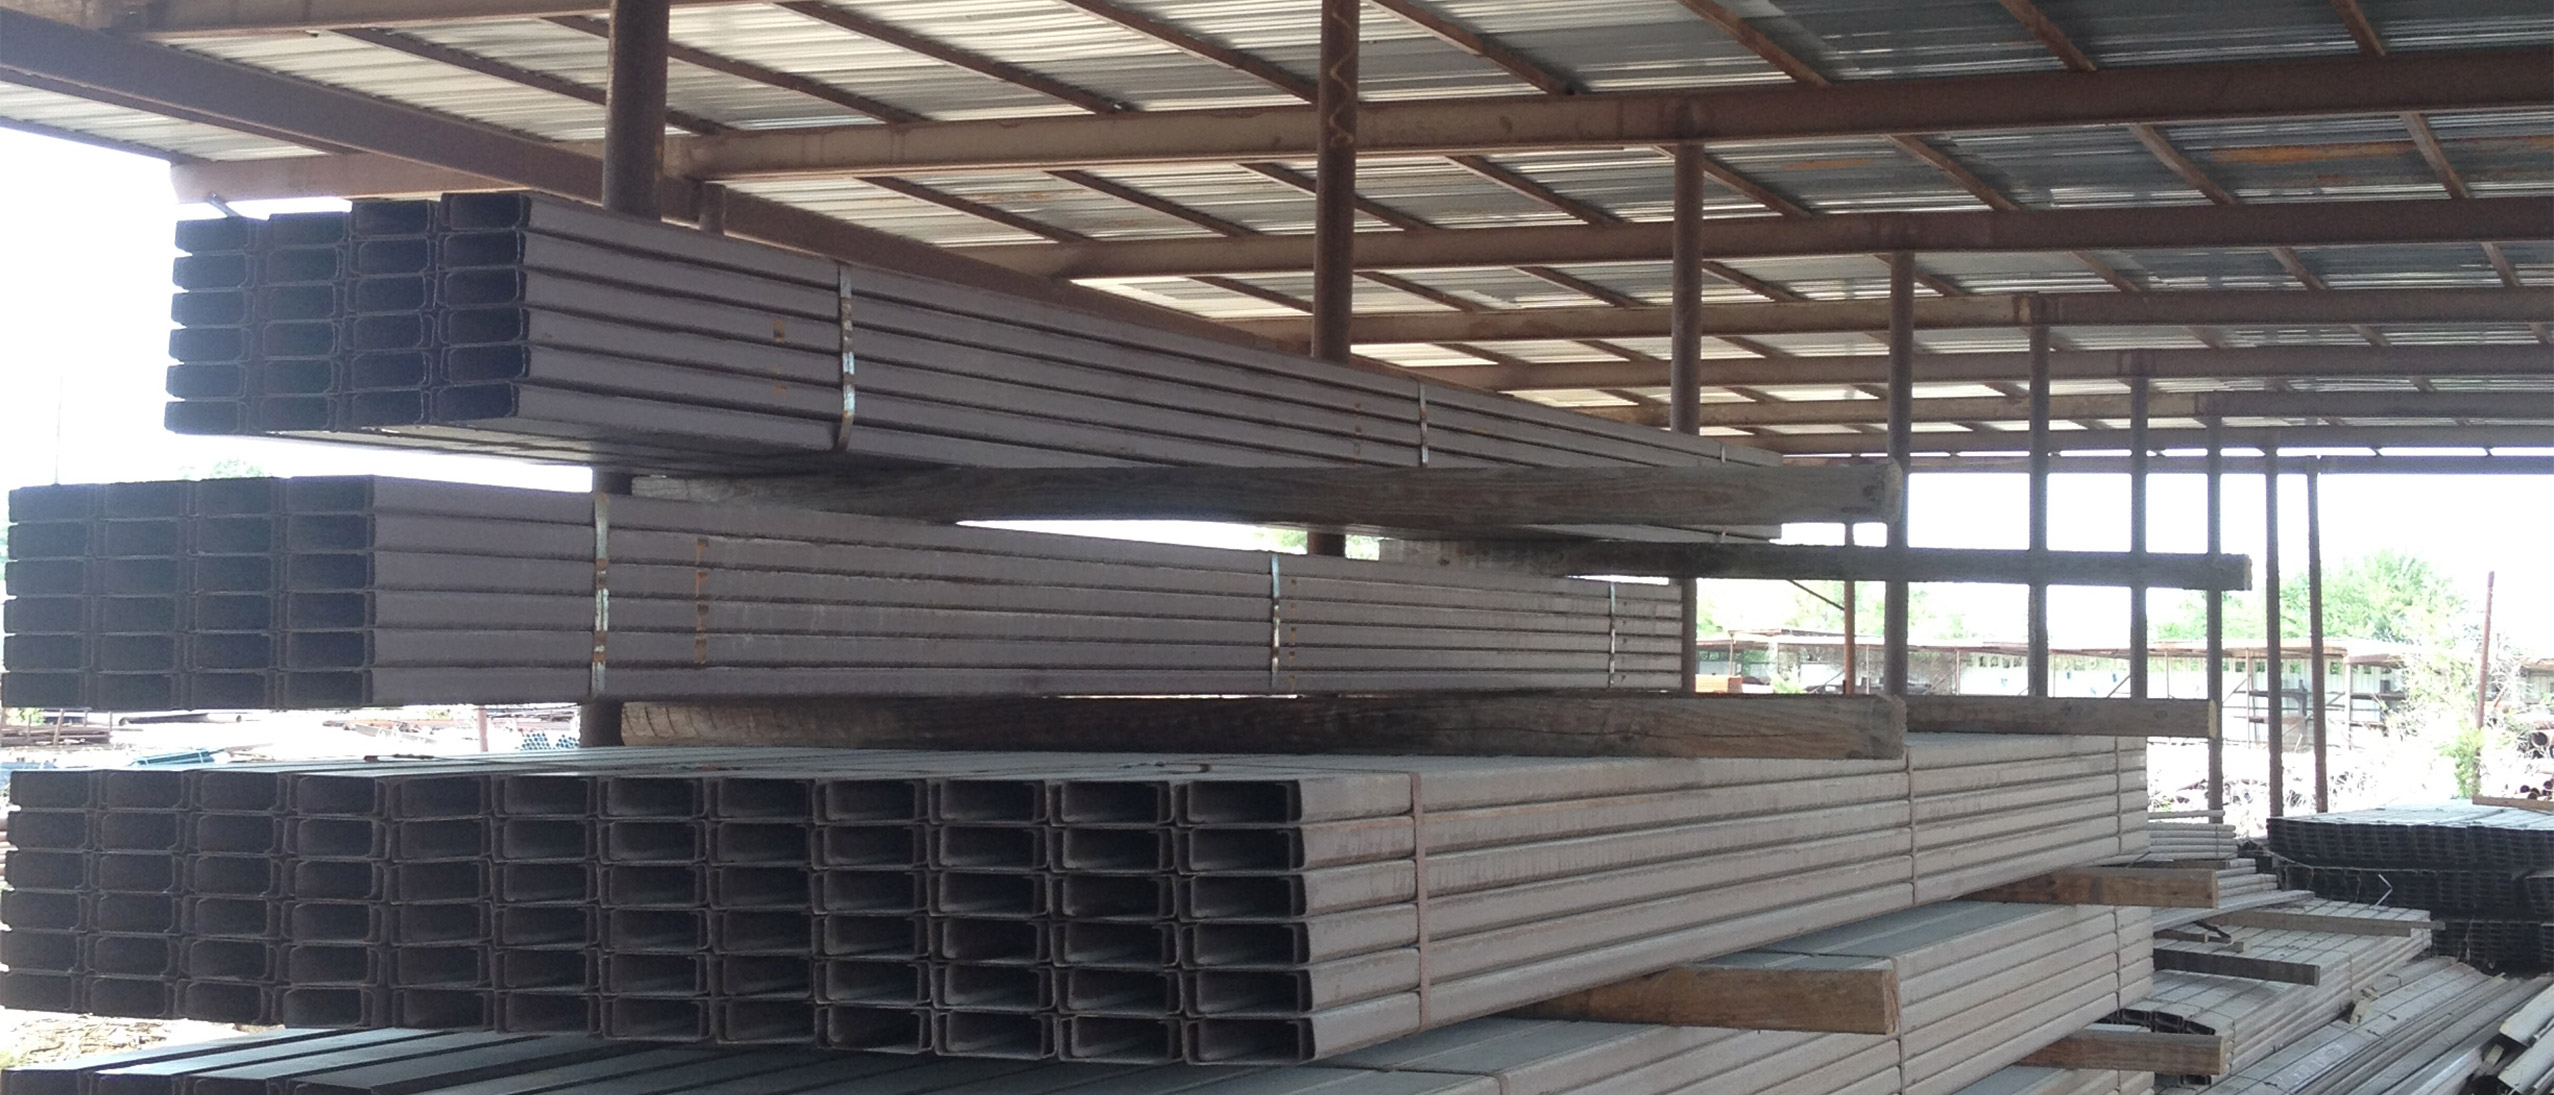 A picture of steel cee-purlin stacked up outside, metals sold by Lowery's Wholesale in Wise County, La Salle County and Reagan County, TX.